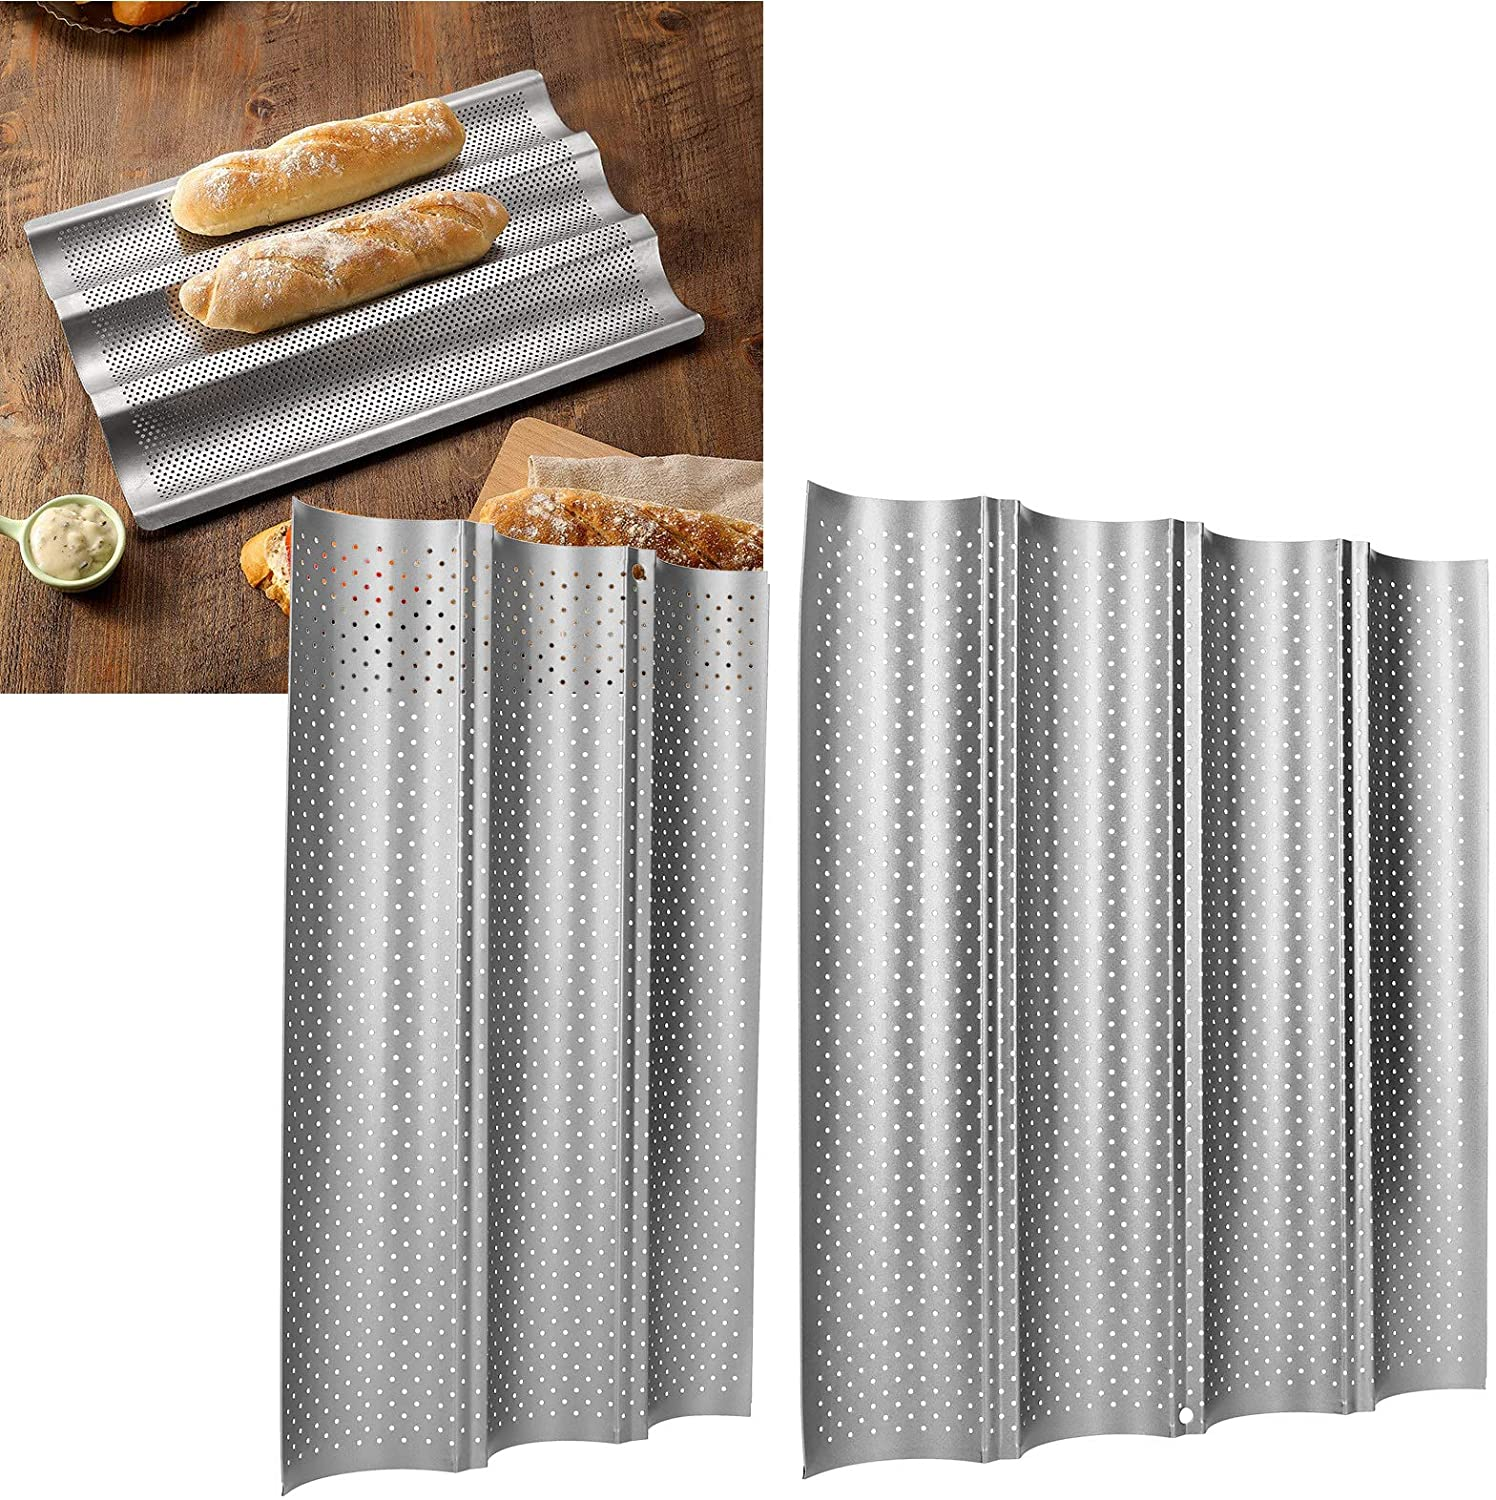 French Bread Baking Pan,Non‑Stick Multi‑Grooves Waves French Bread Pan Baguette Baking Cooking Tray Mold Kitchen Tool Cooking Bakers Molding for French Bread Baking(3)